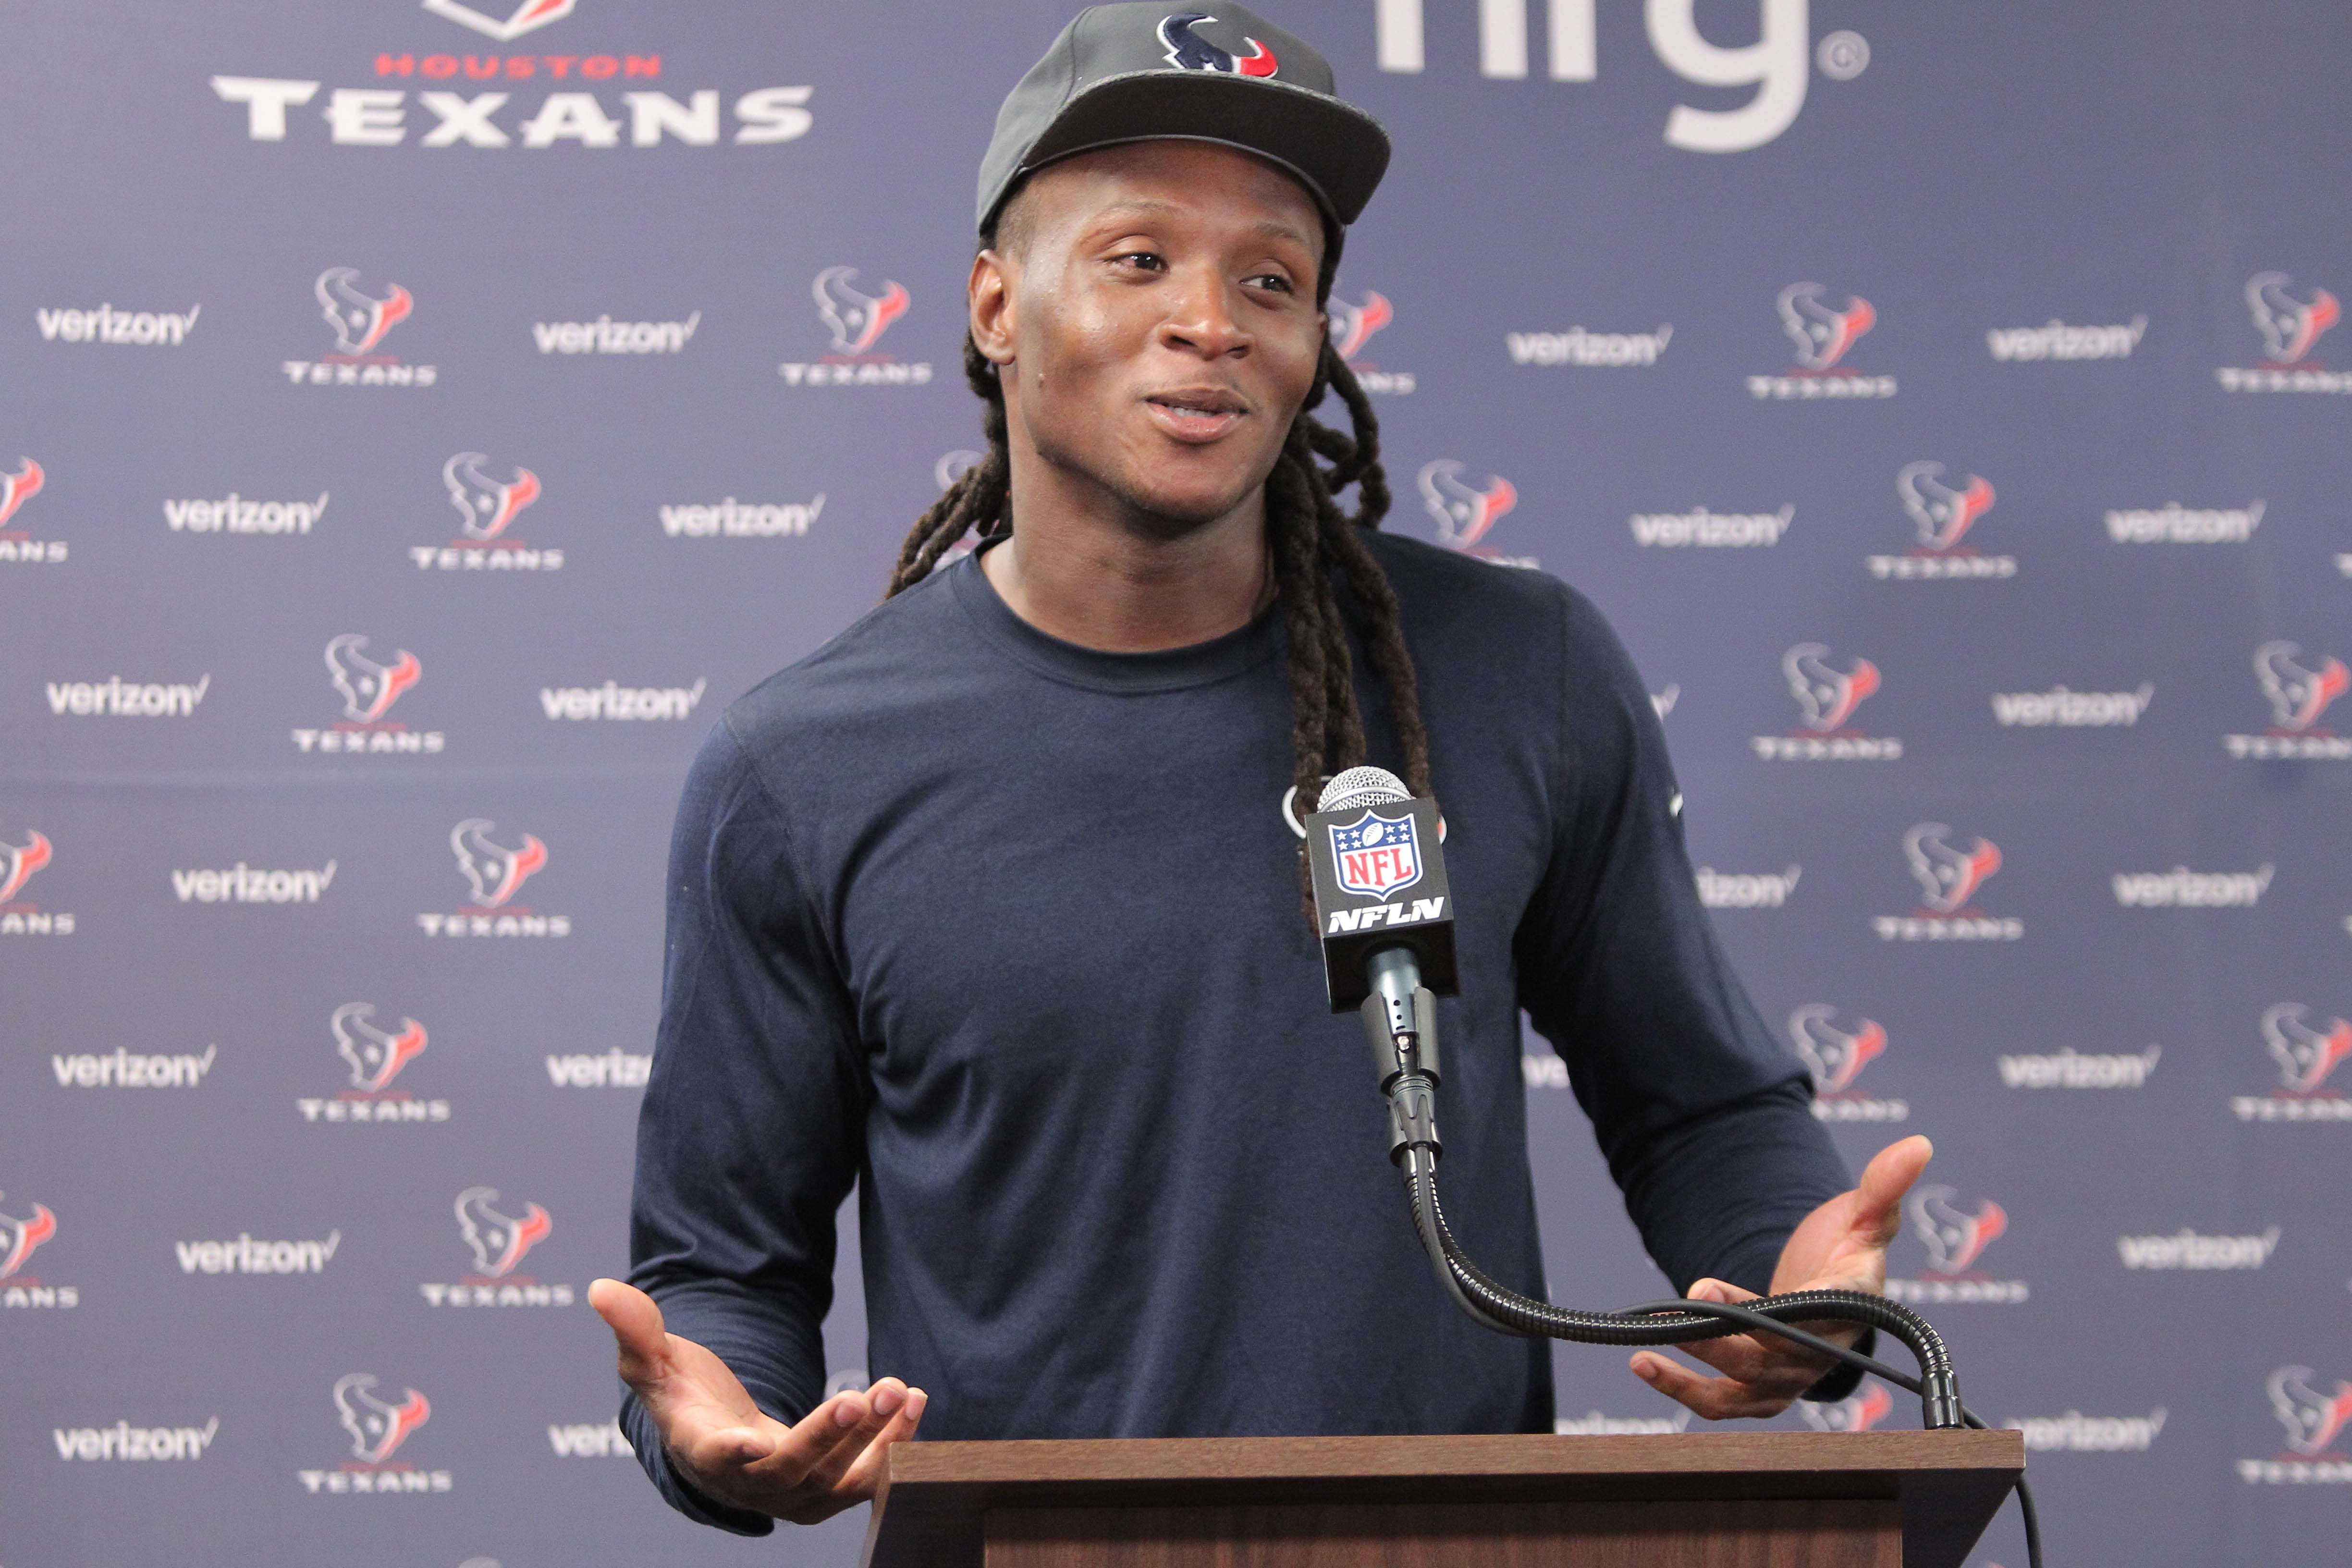 Maybe Nuk's reading himself some McCarthy while holding out.